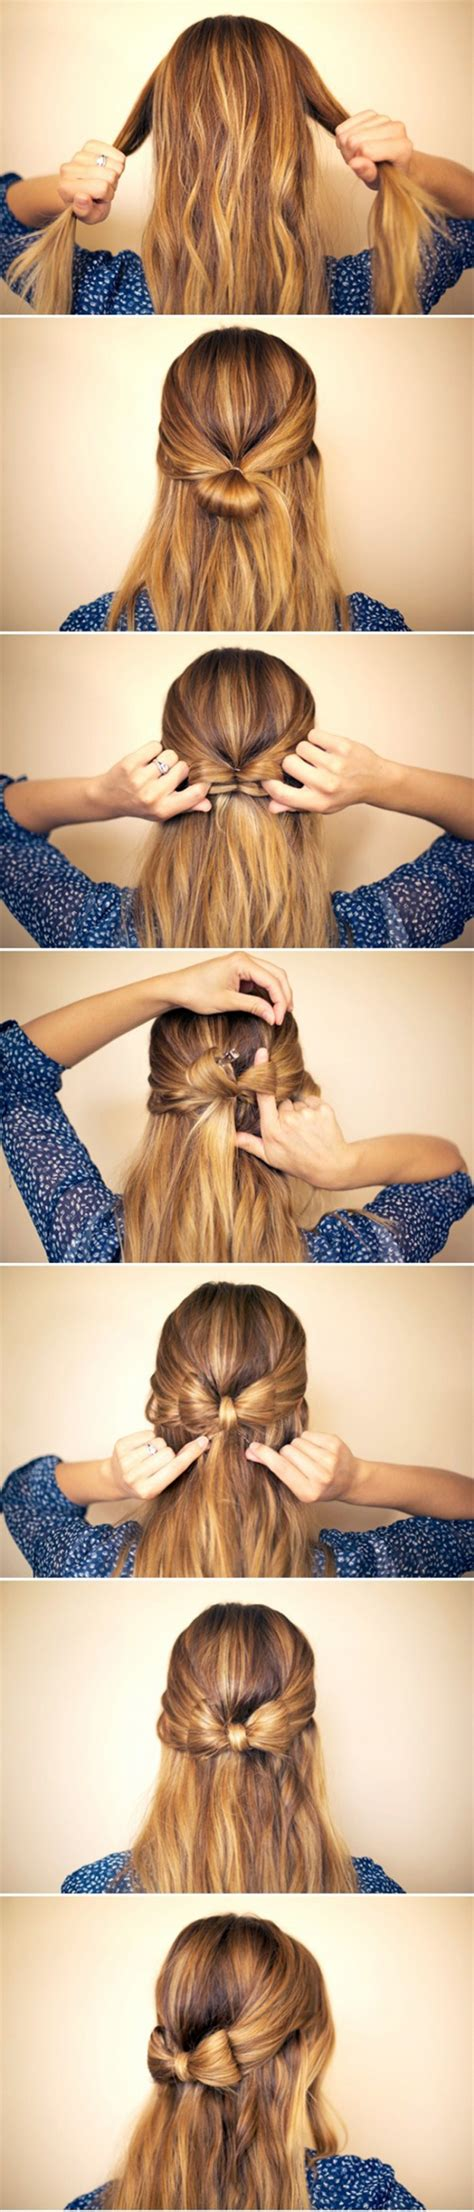 tutorial hair design useful hair tutorials